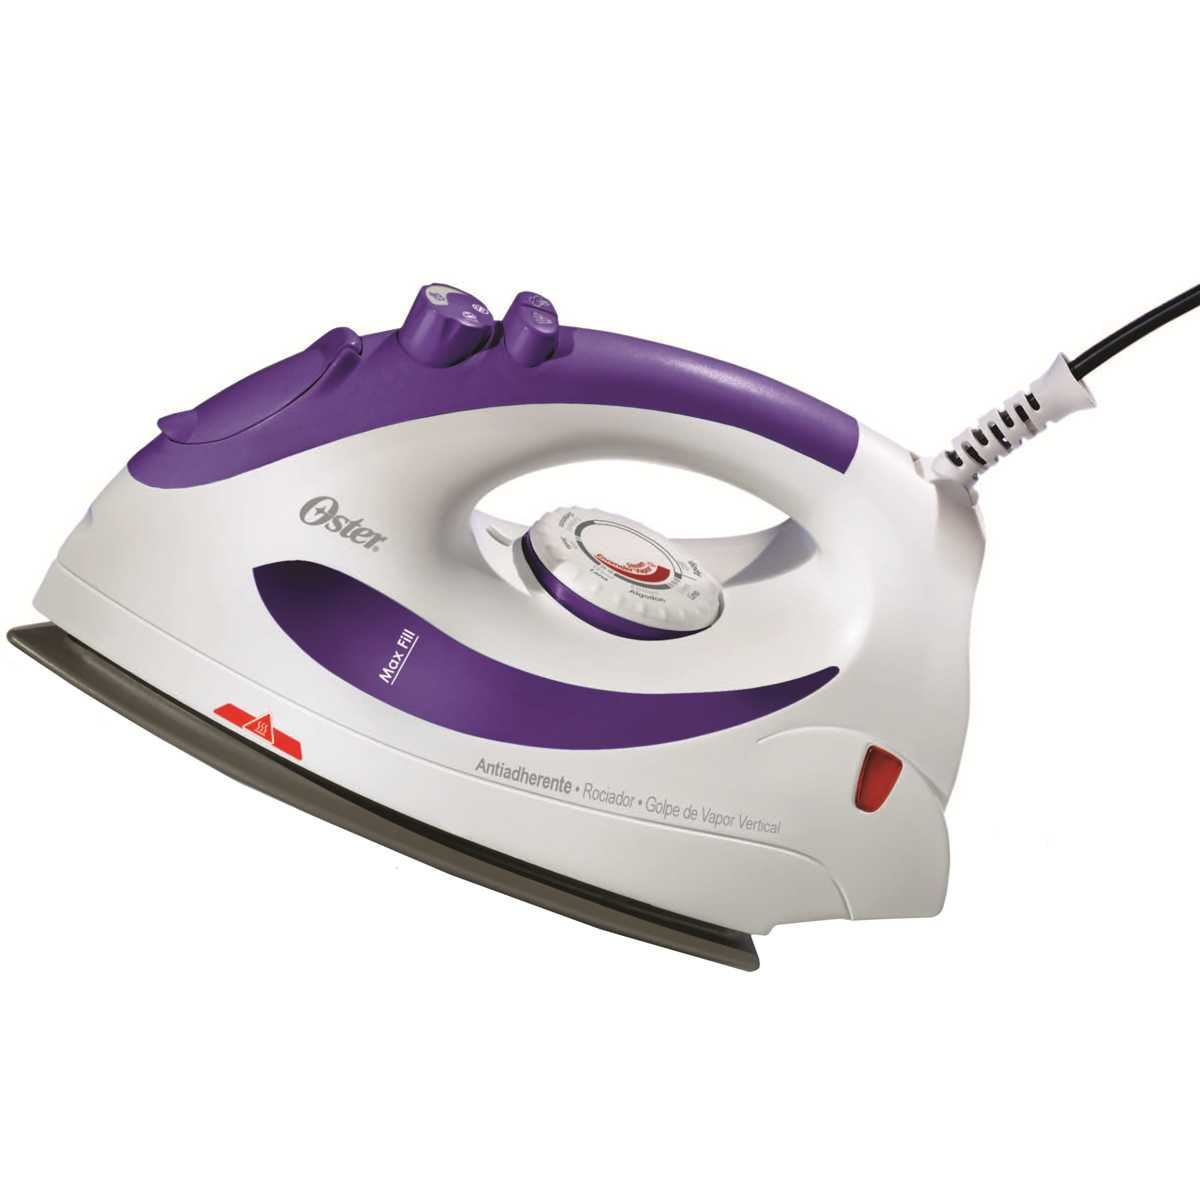 Picture of Oster Steam Iron 5106